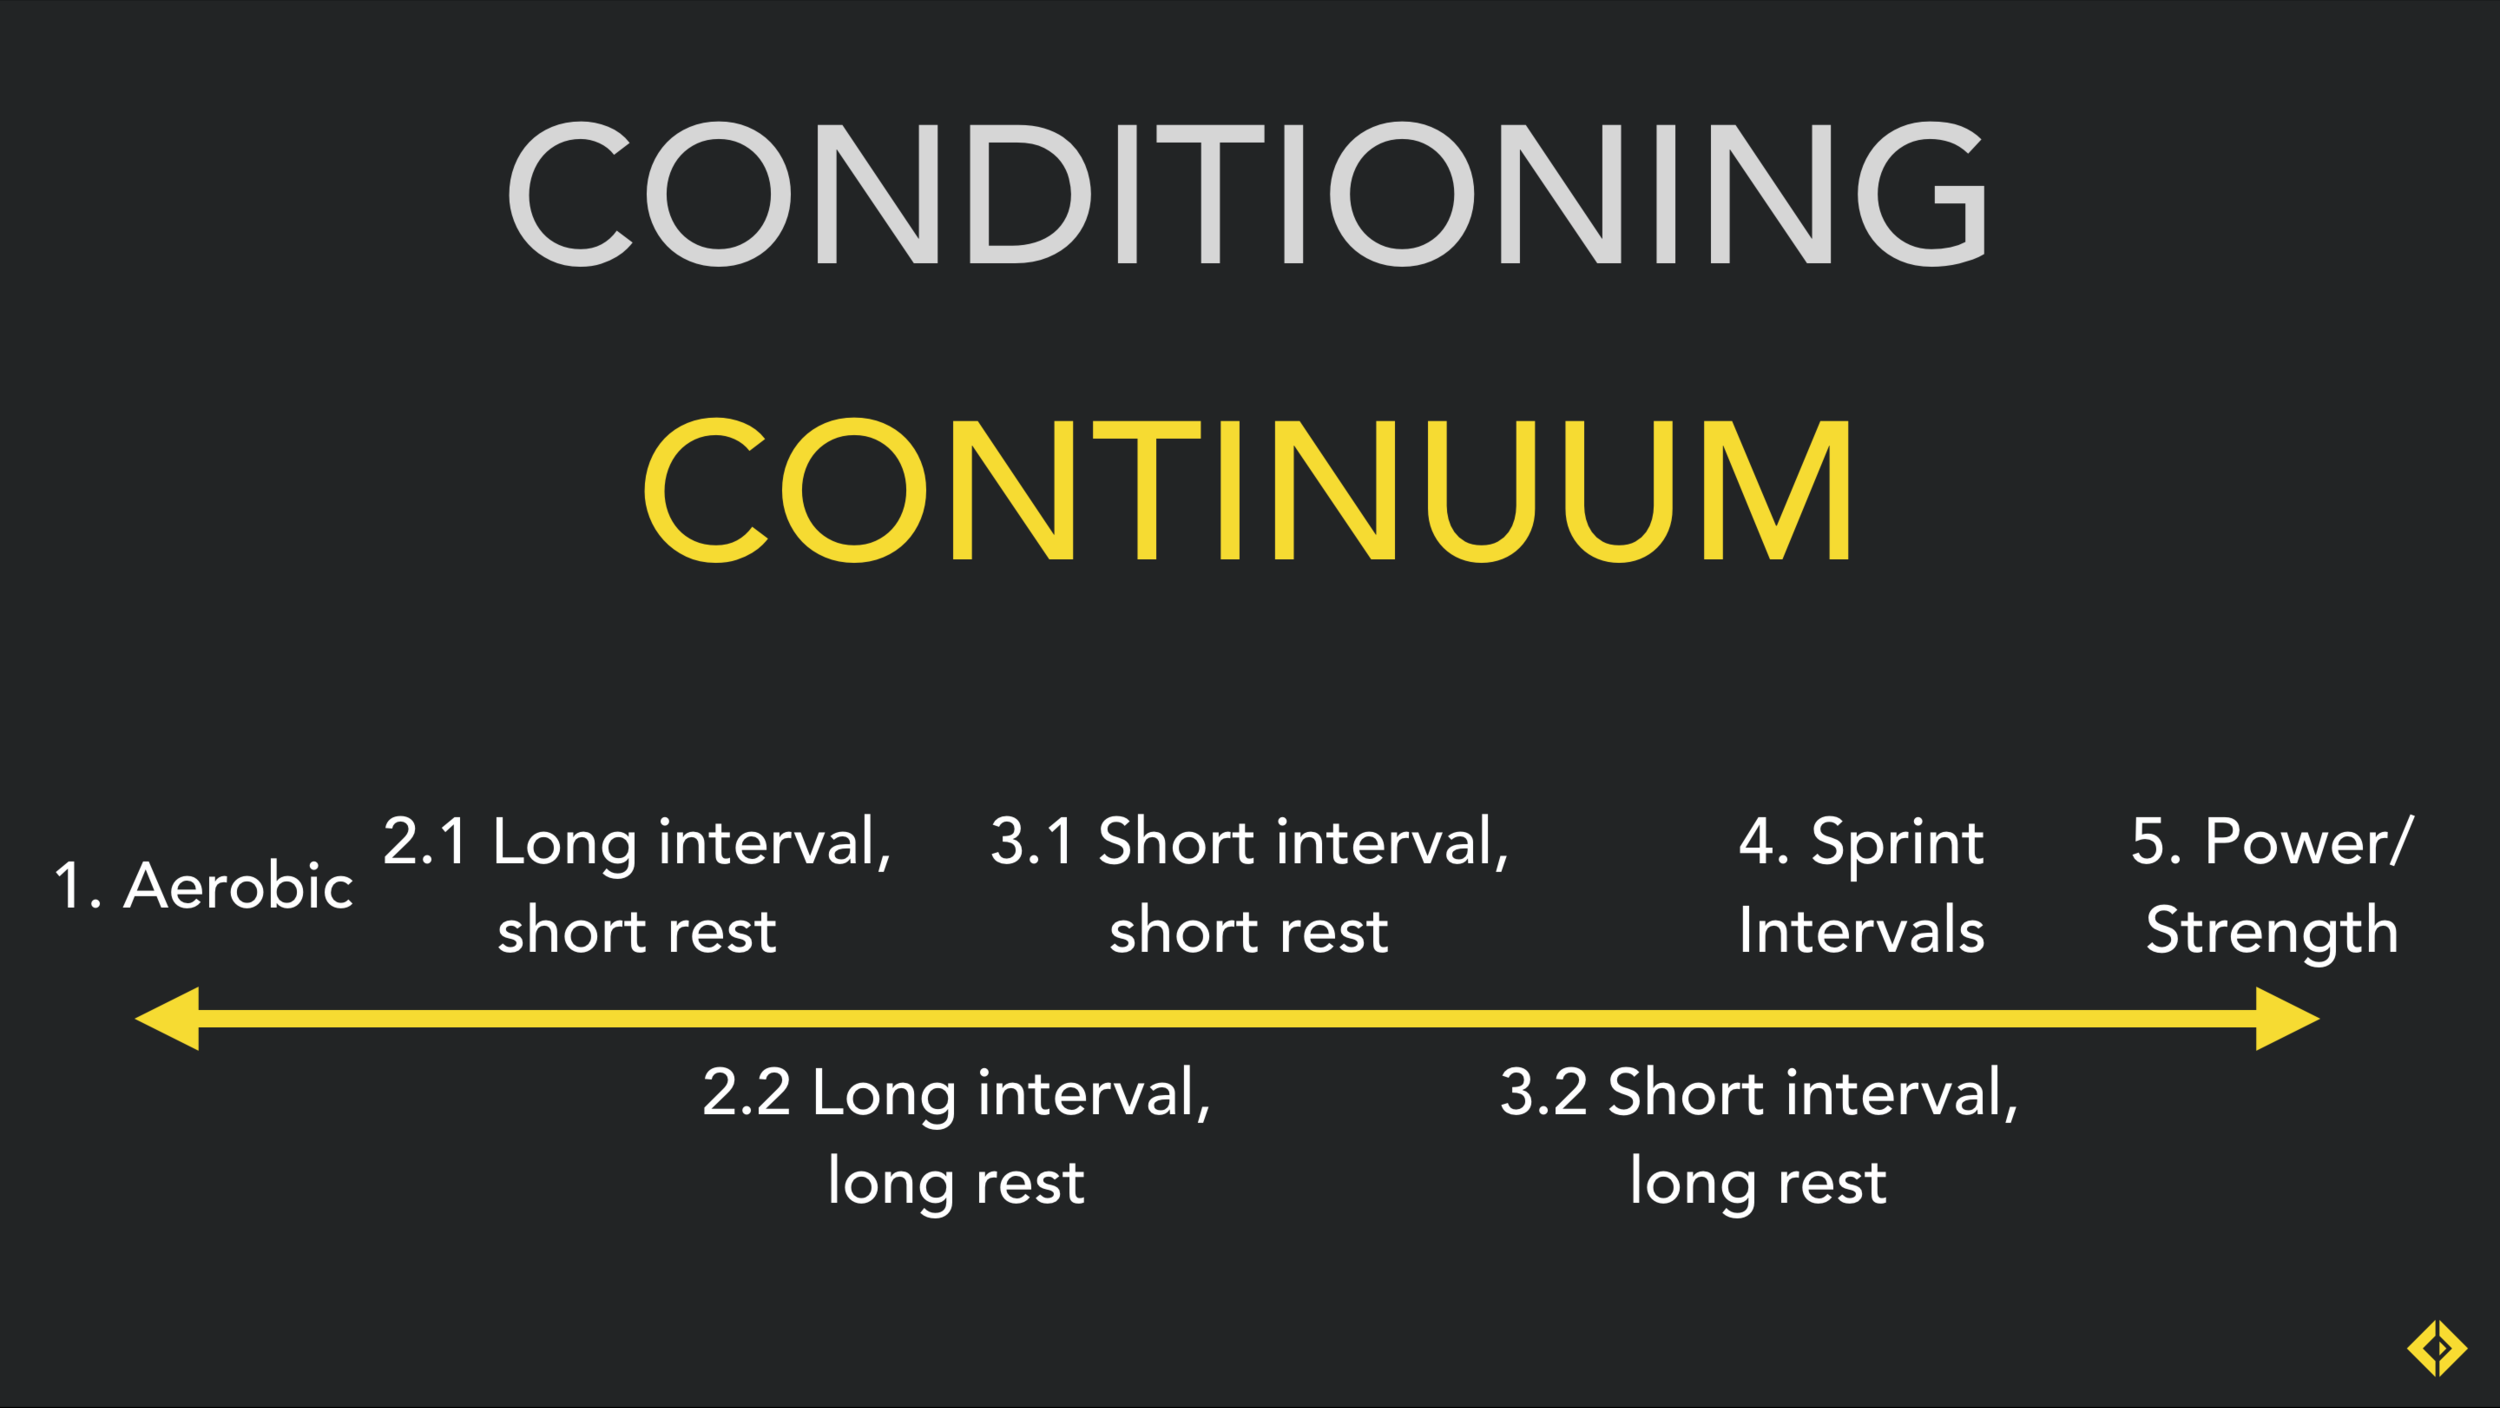 The benefits we do down the right of the continuum will help and flow into the left. Things don't necessarily transfer from left to right though.